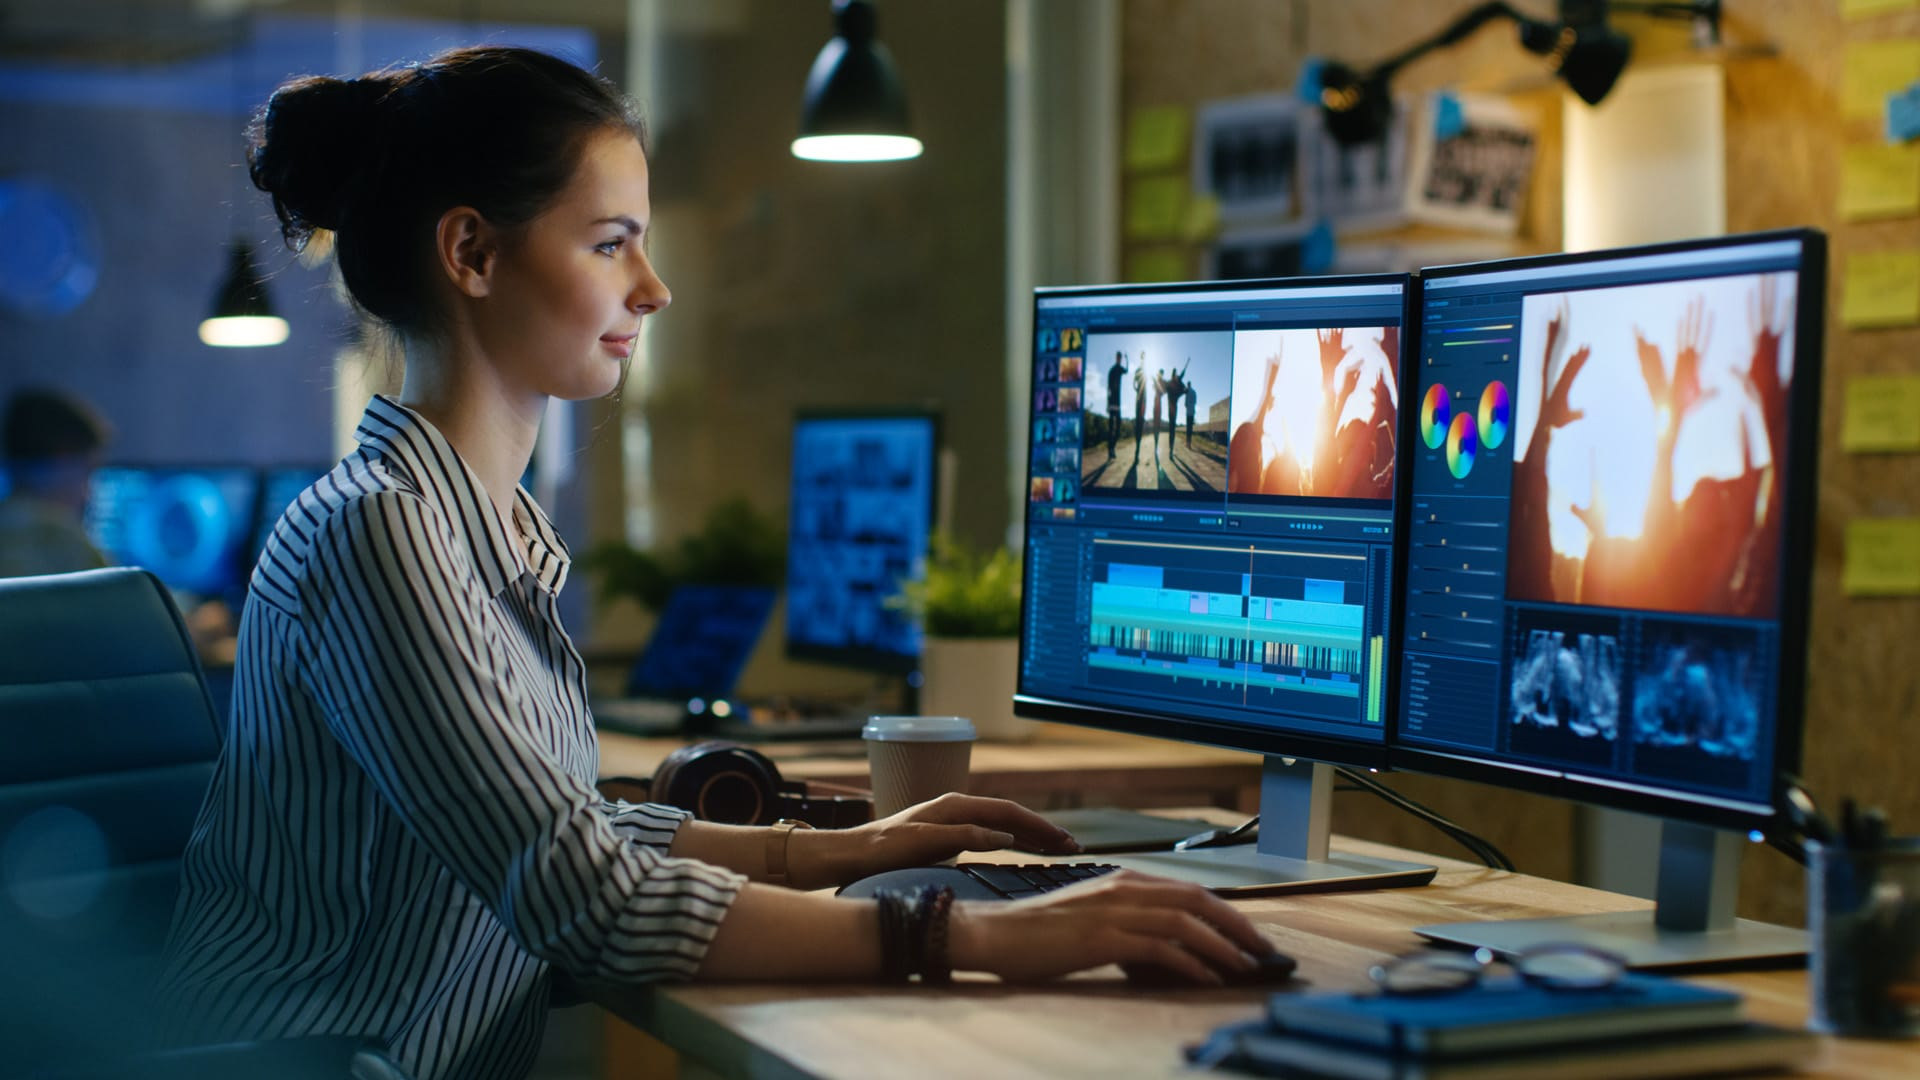 How to Become a Film and Video Editor